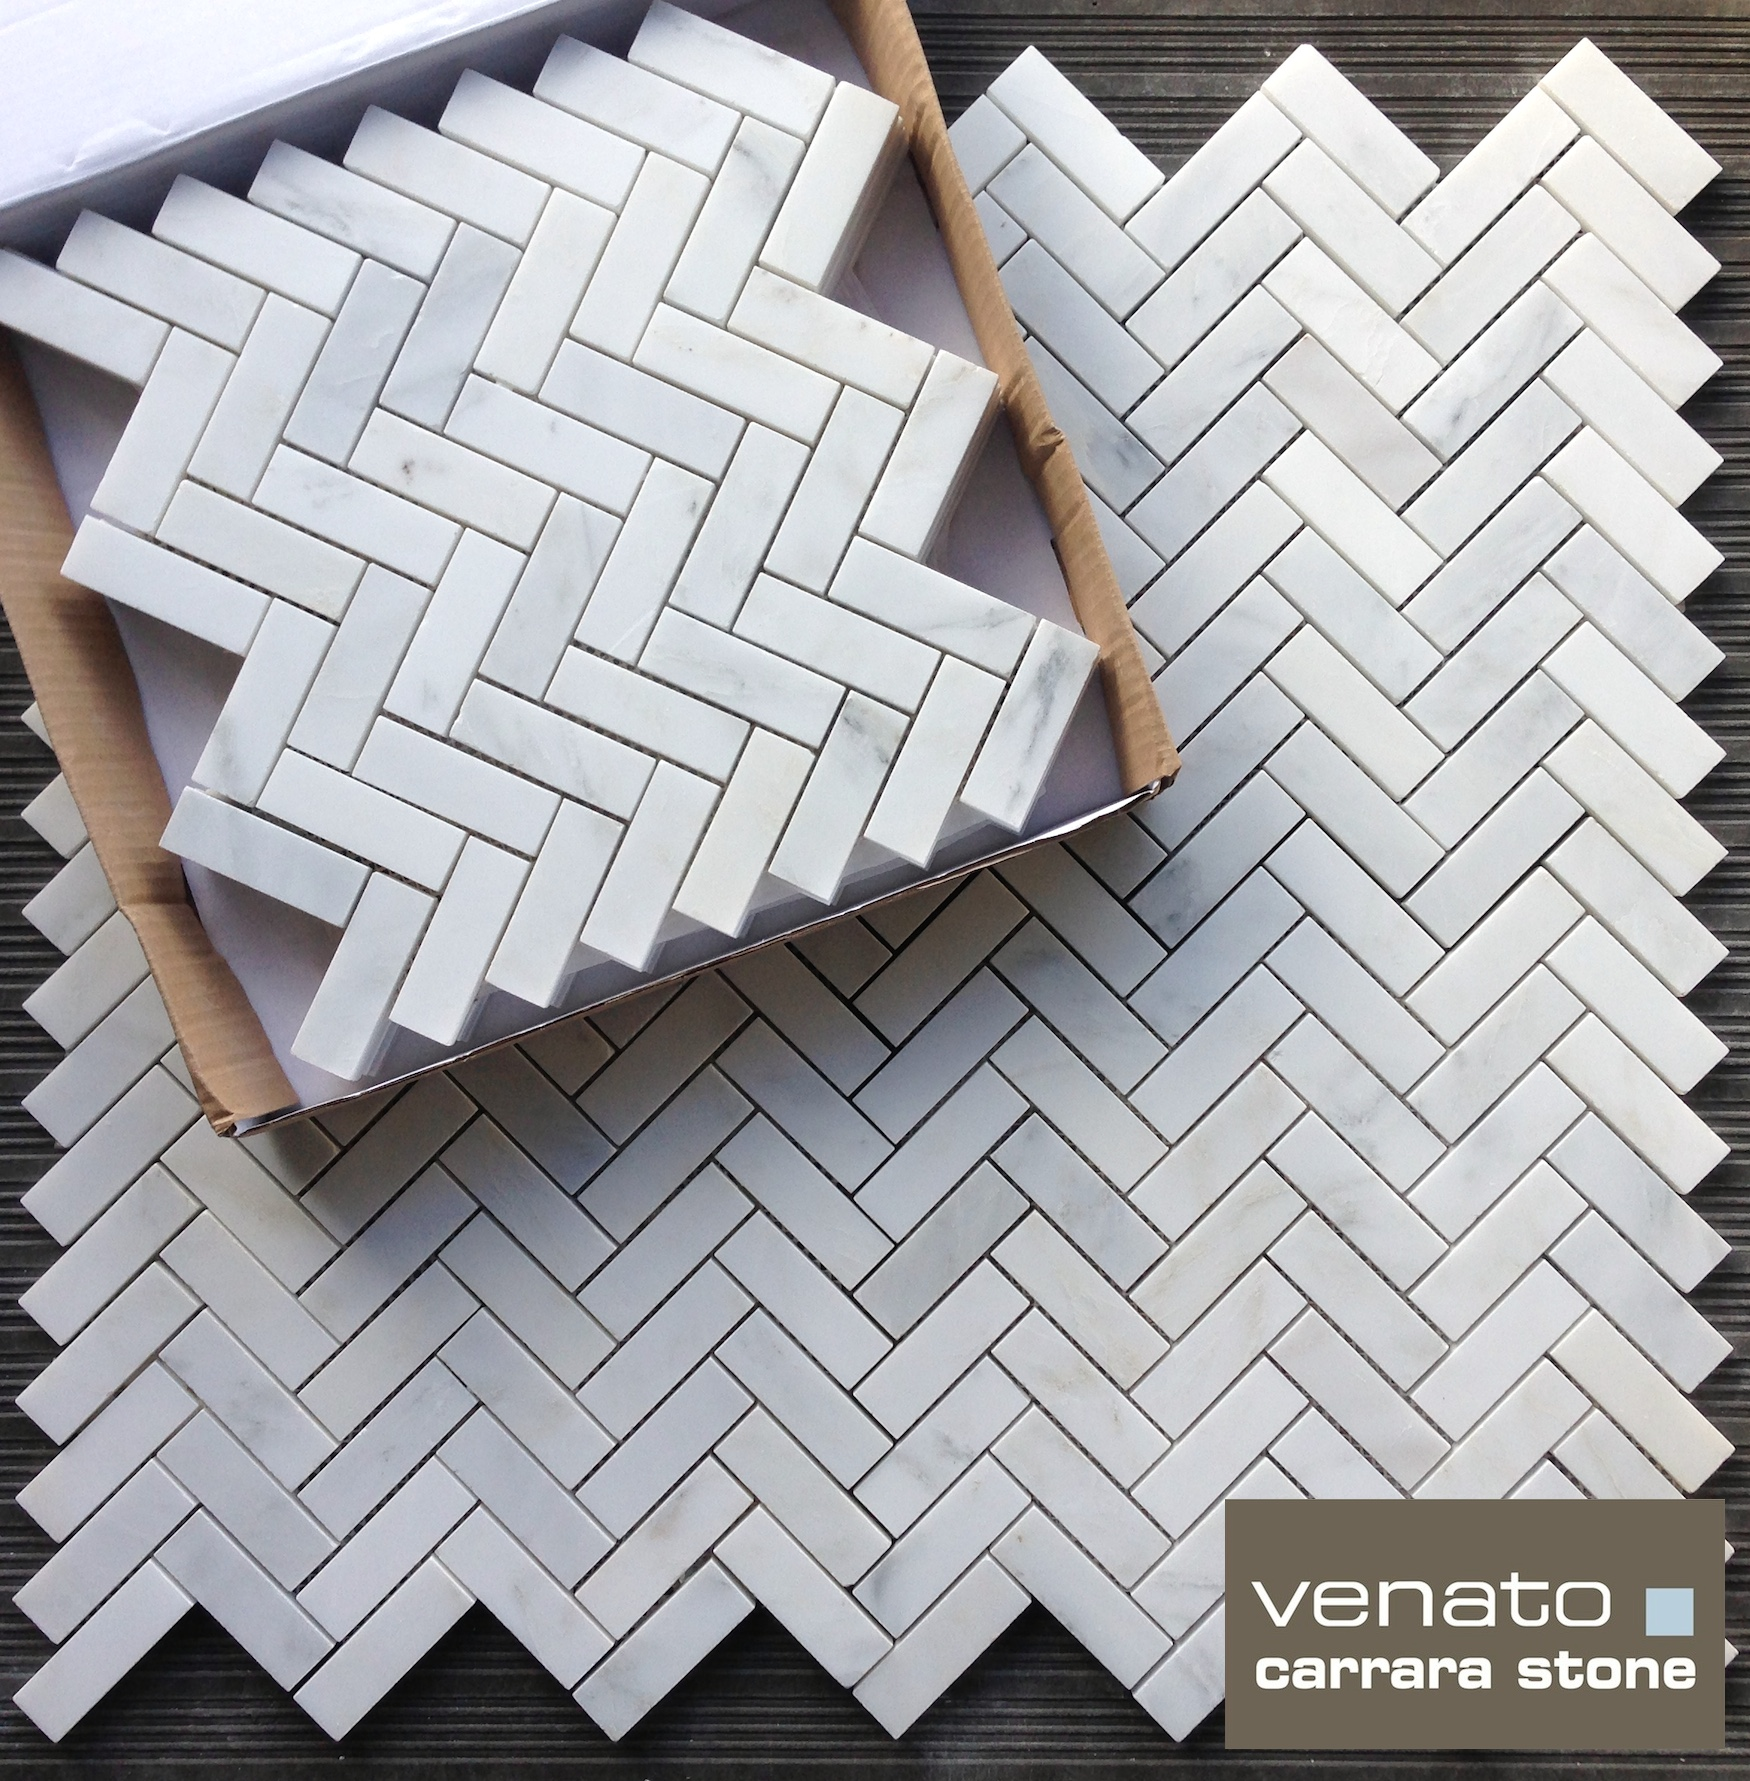 Carrara Venato 1 215 3 Herringbone Mosaic Tile The Builder